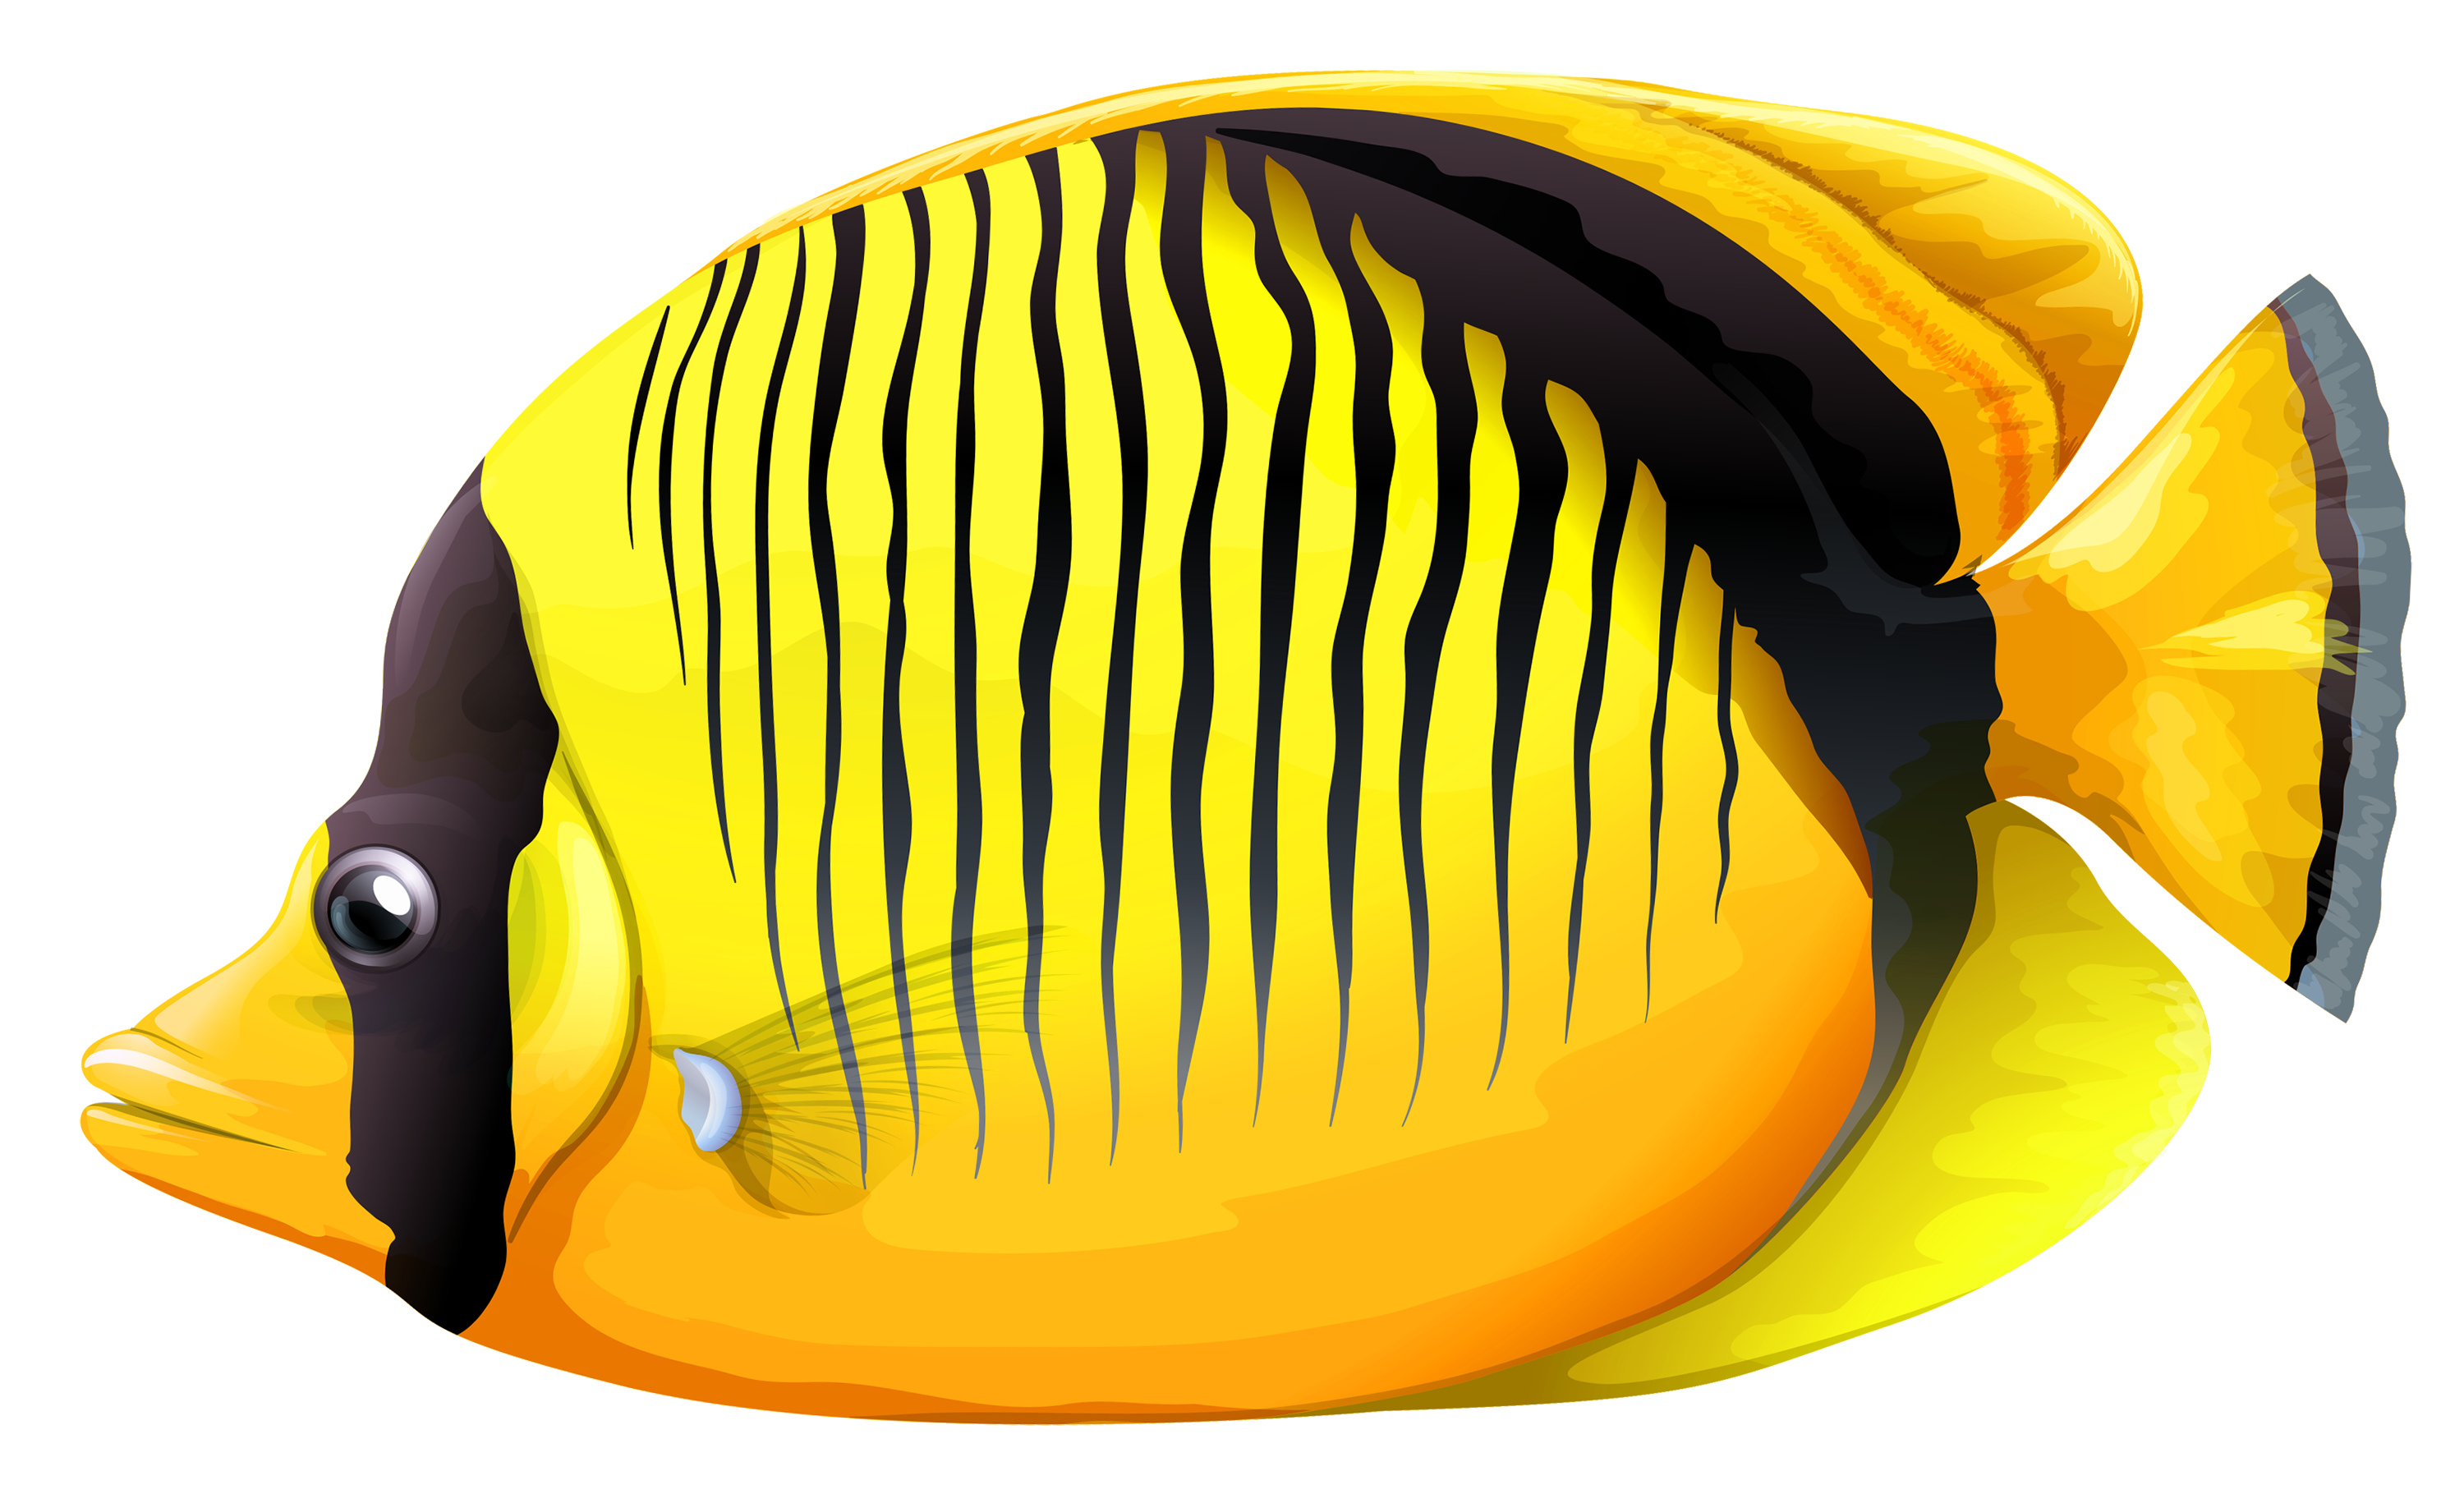 Fish clip art transparent background. Yellow butterfly png clipart